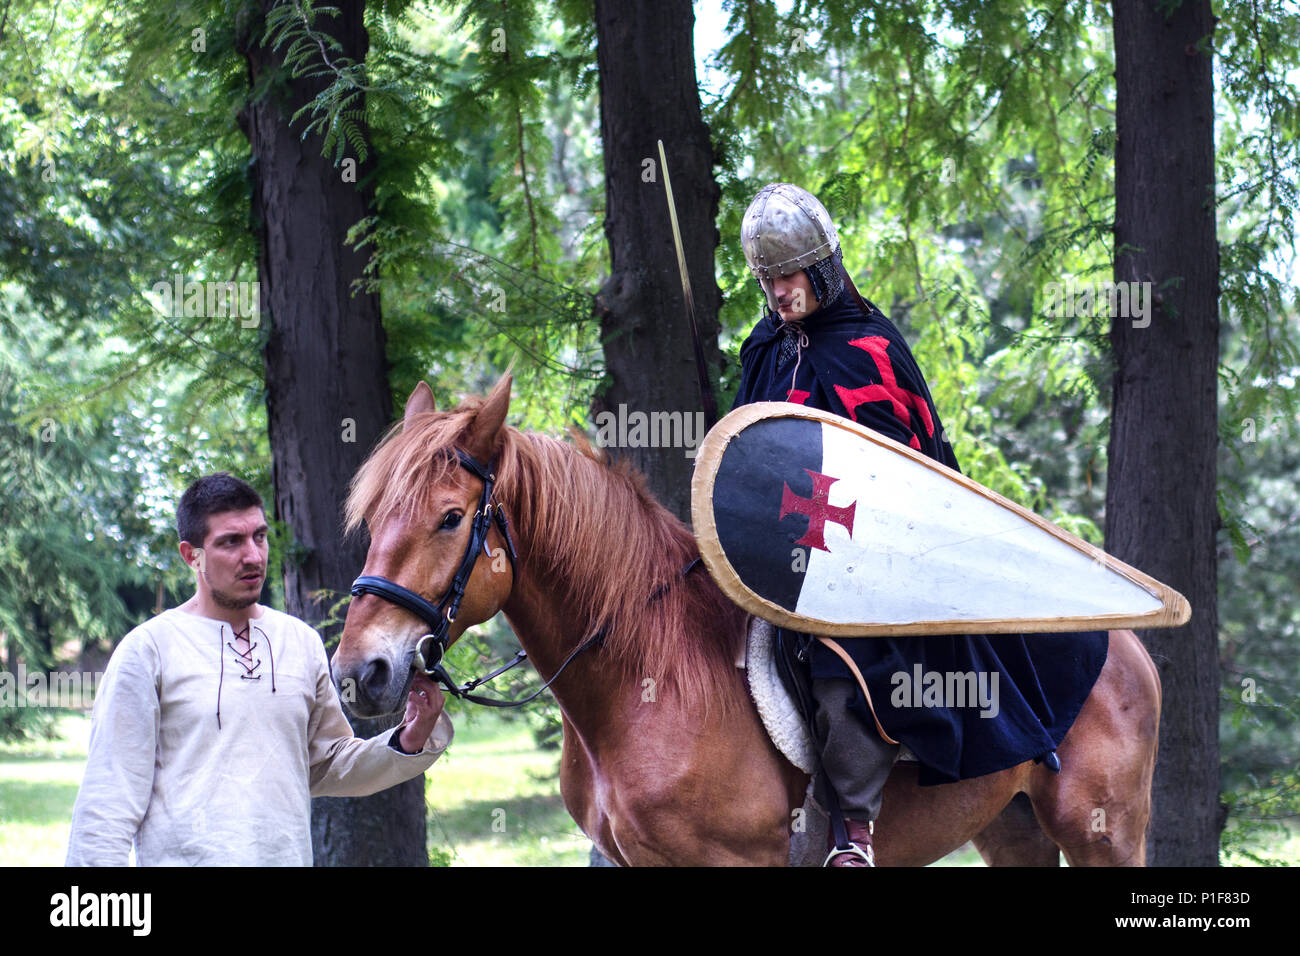 Nis, Serbia - June 10, 2018: Medieval Knight with armor and shield on brown horse and horseman in forest. Middle ages concept Stock Photo